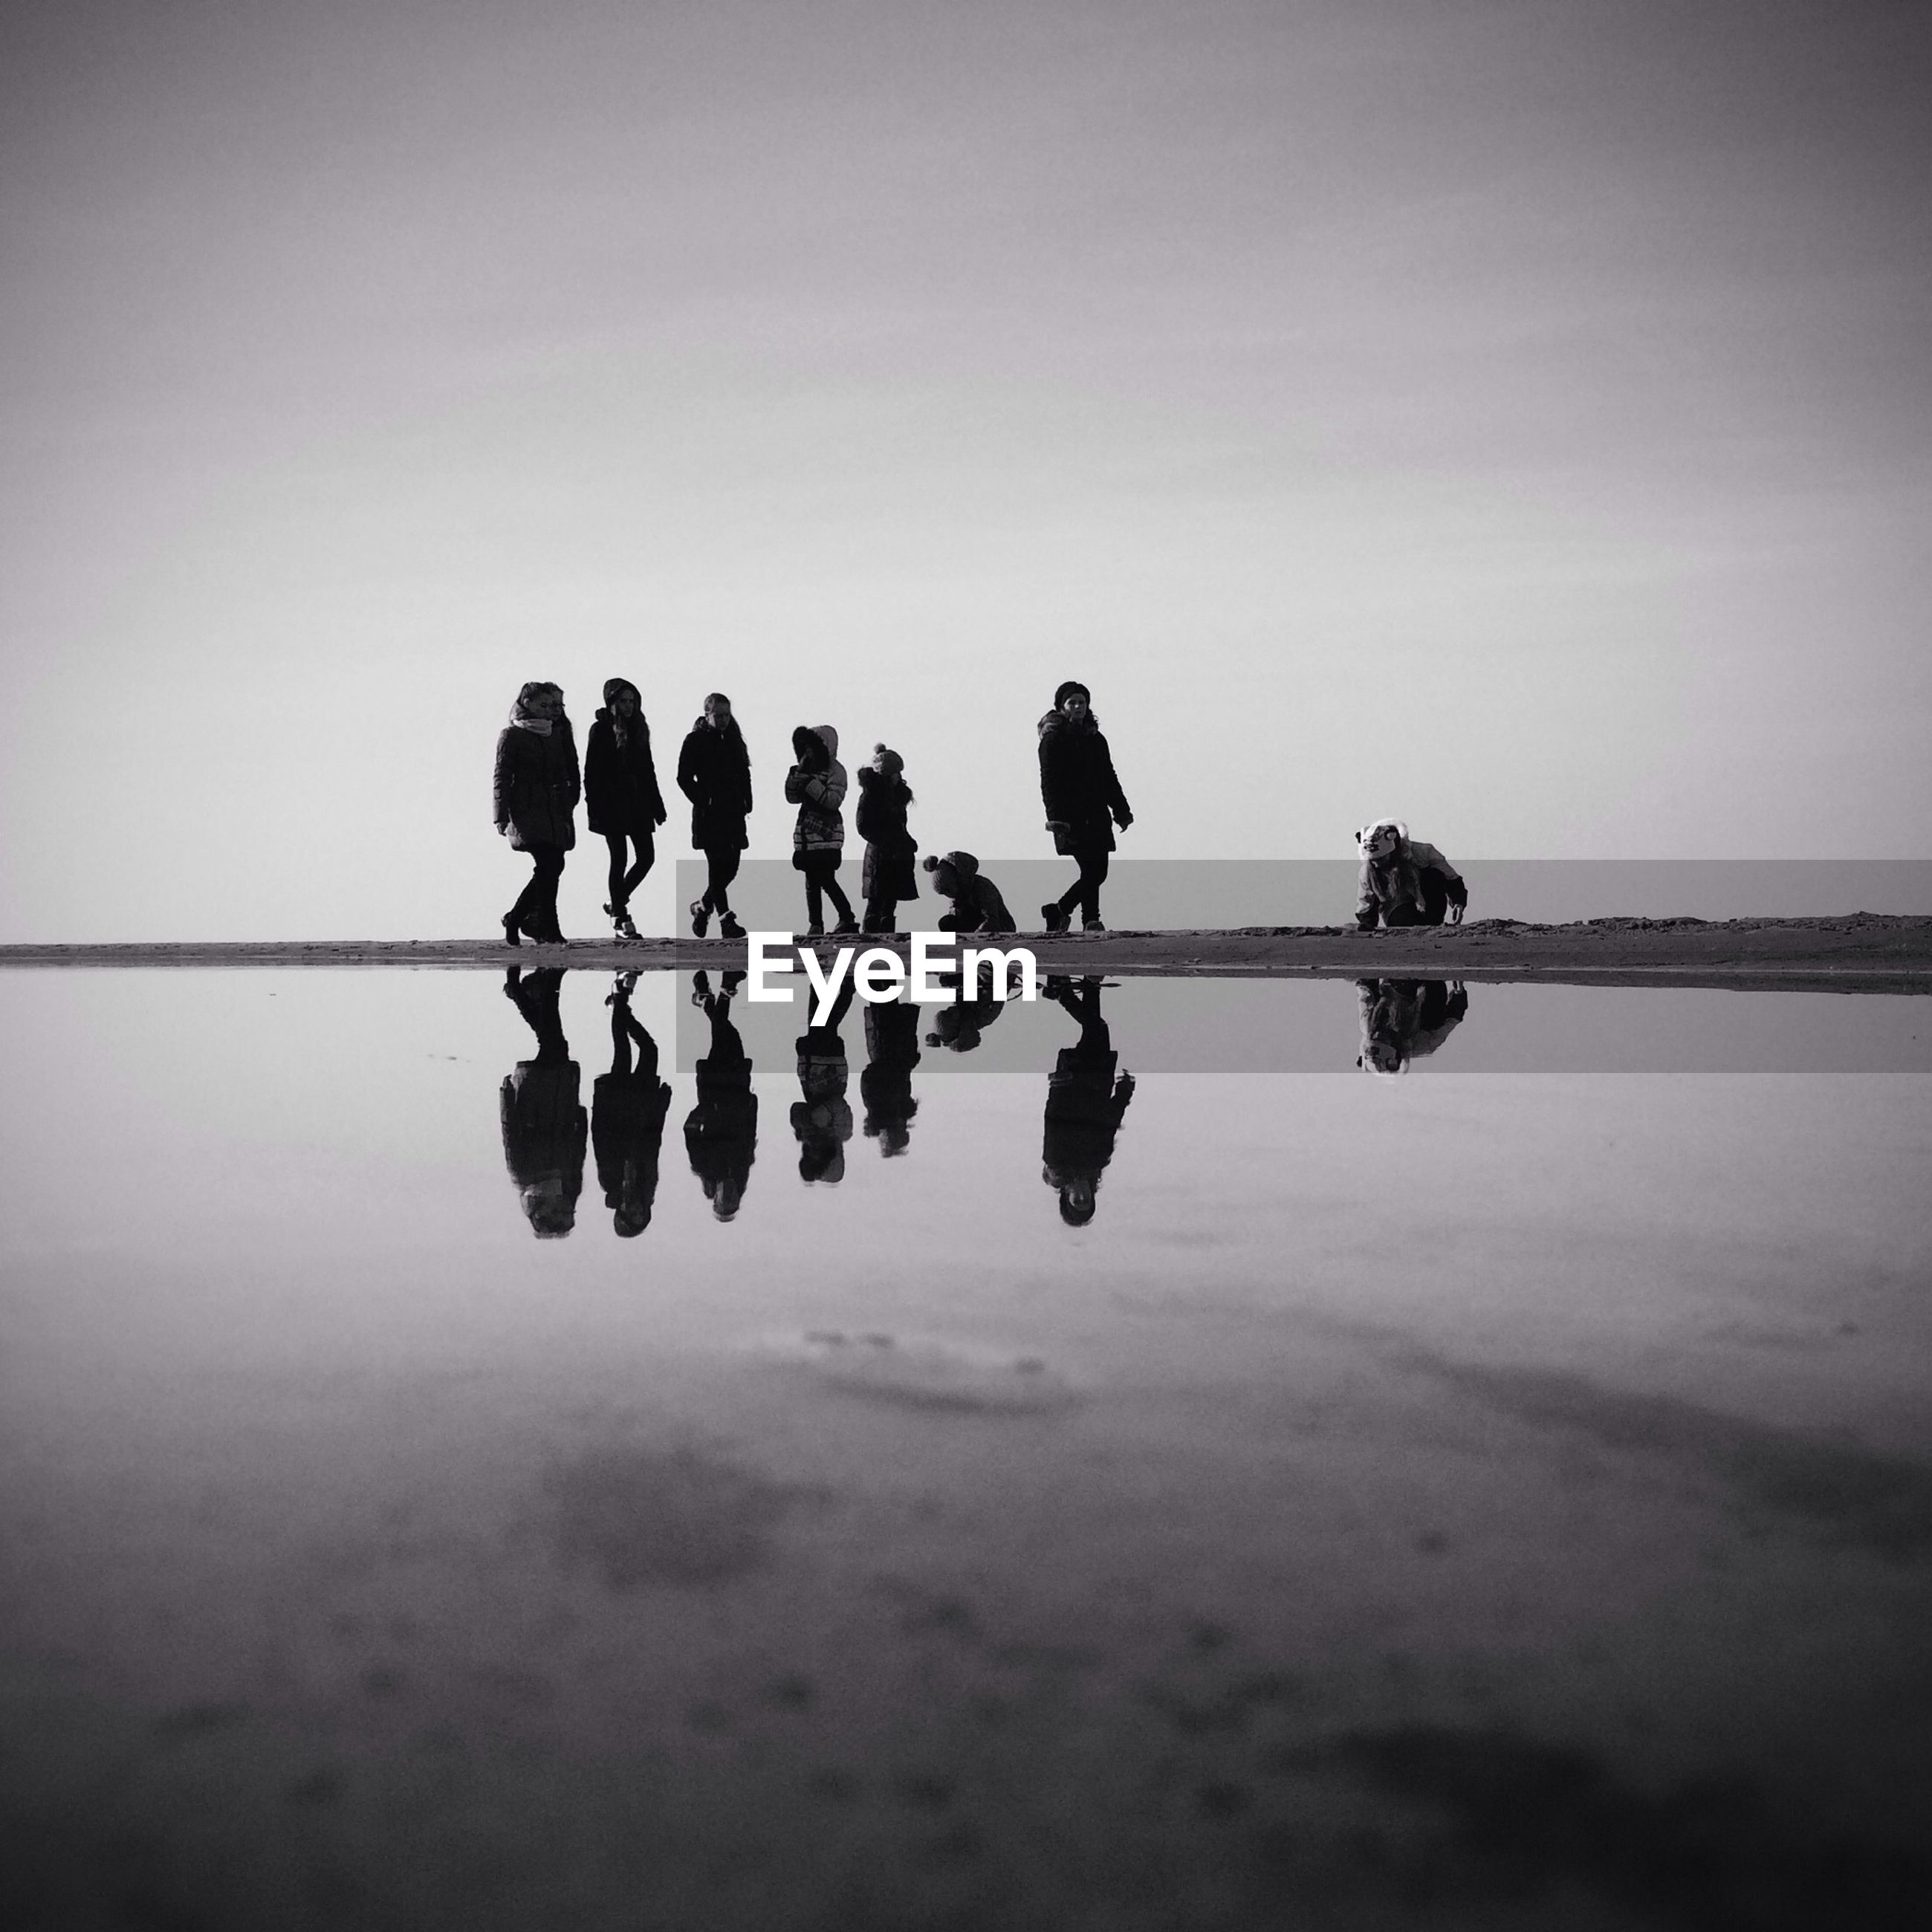 Group of people with reflection on beach